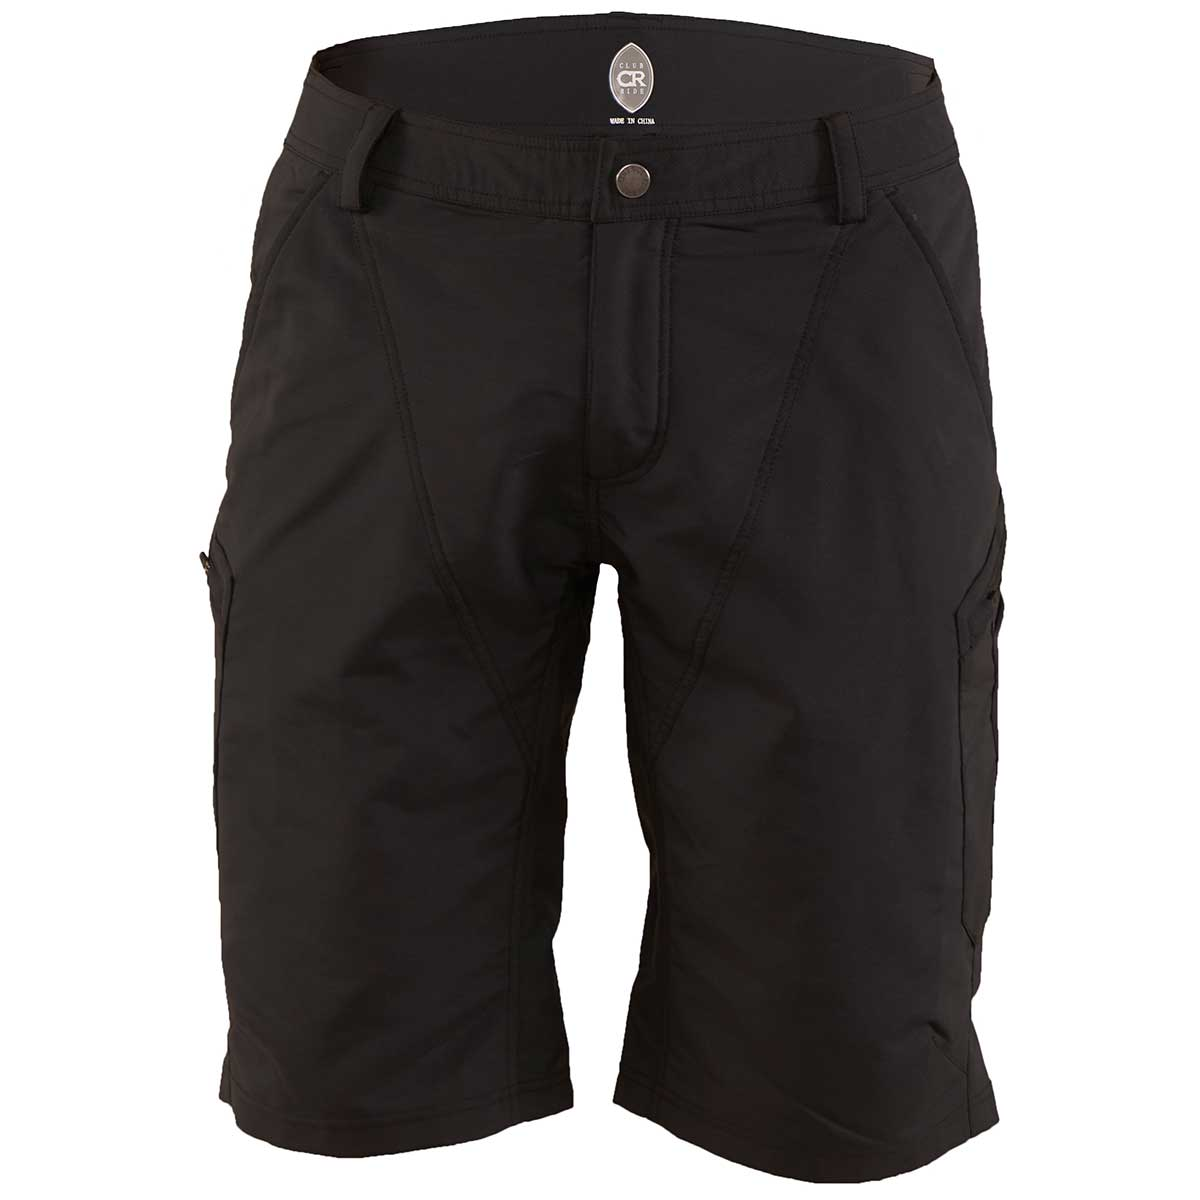 Club Ride men's HiFi Short in Black